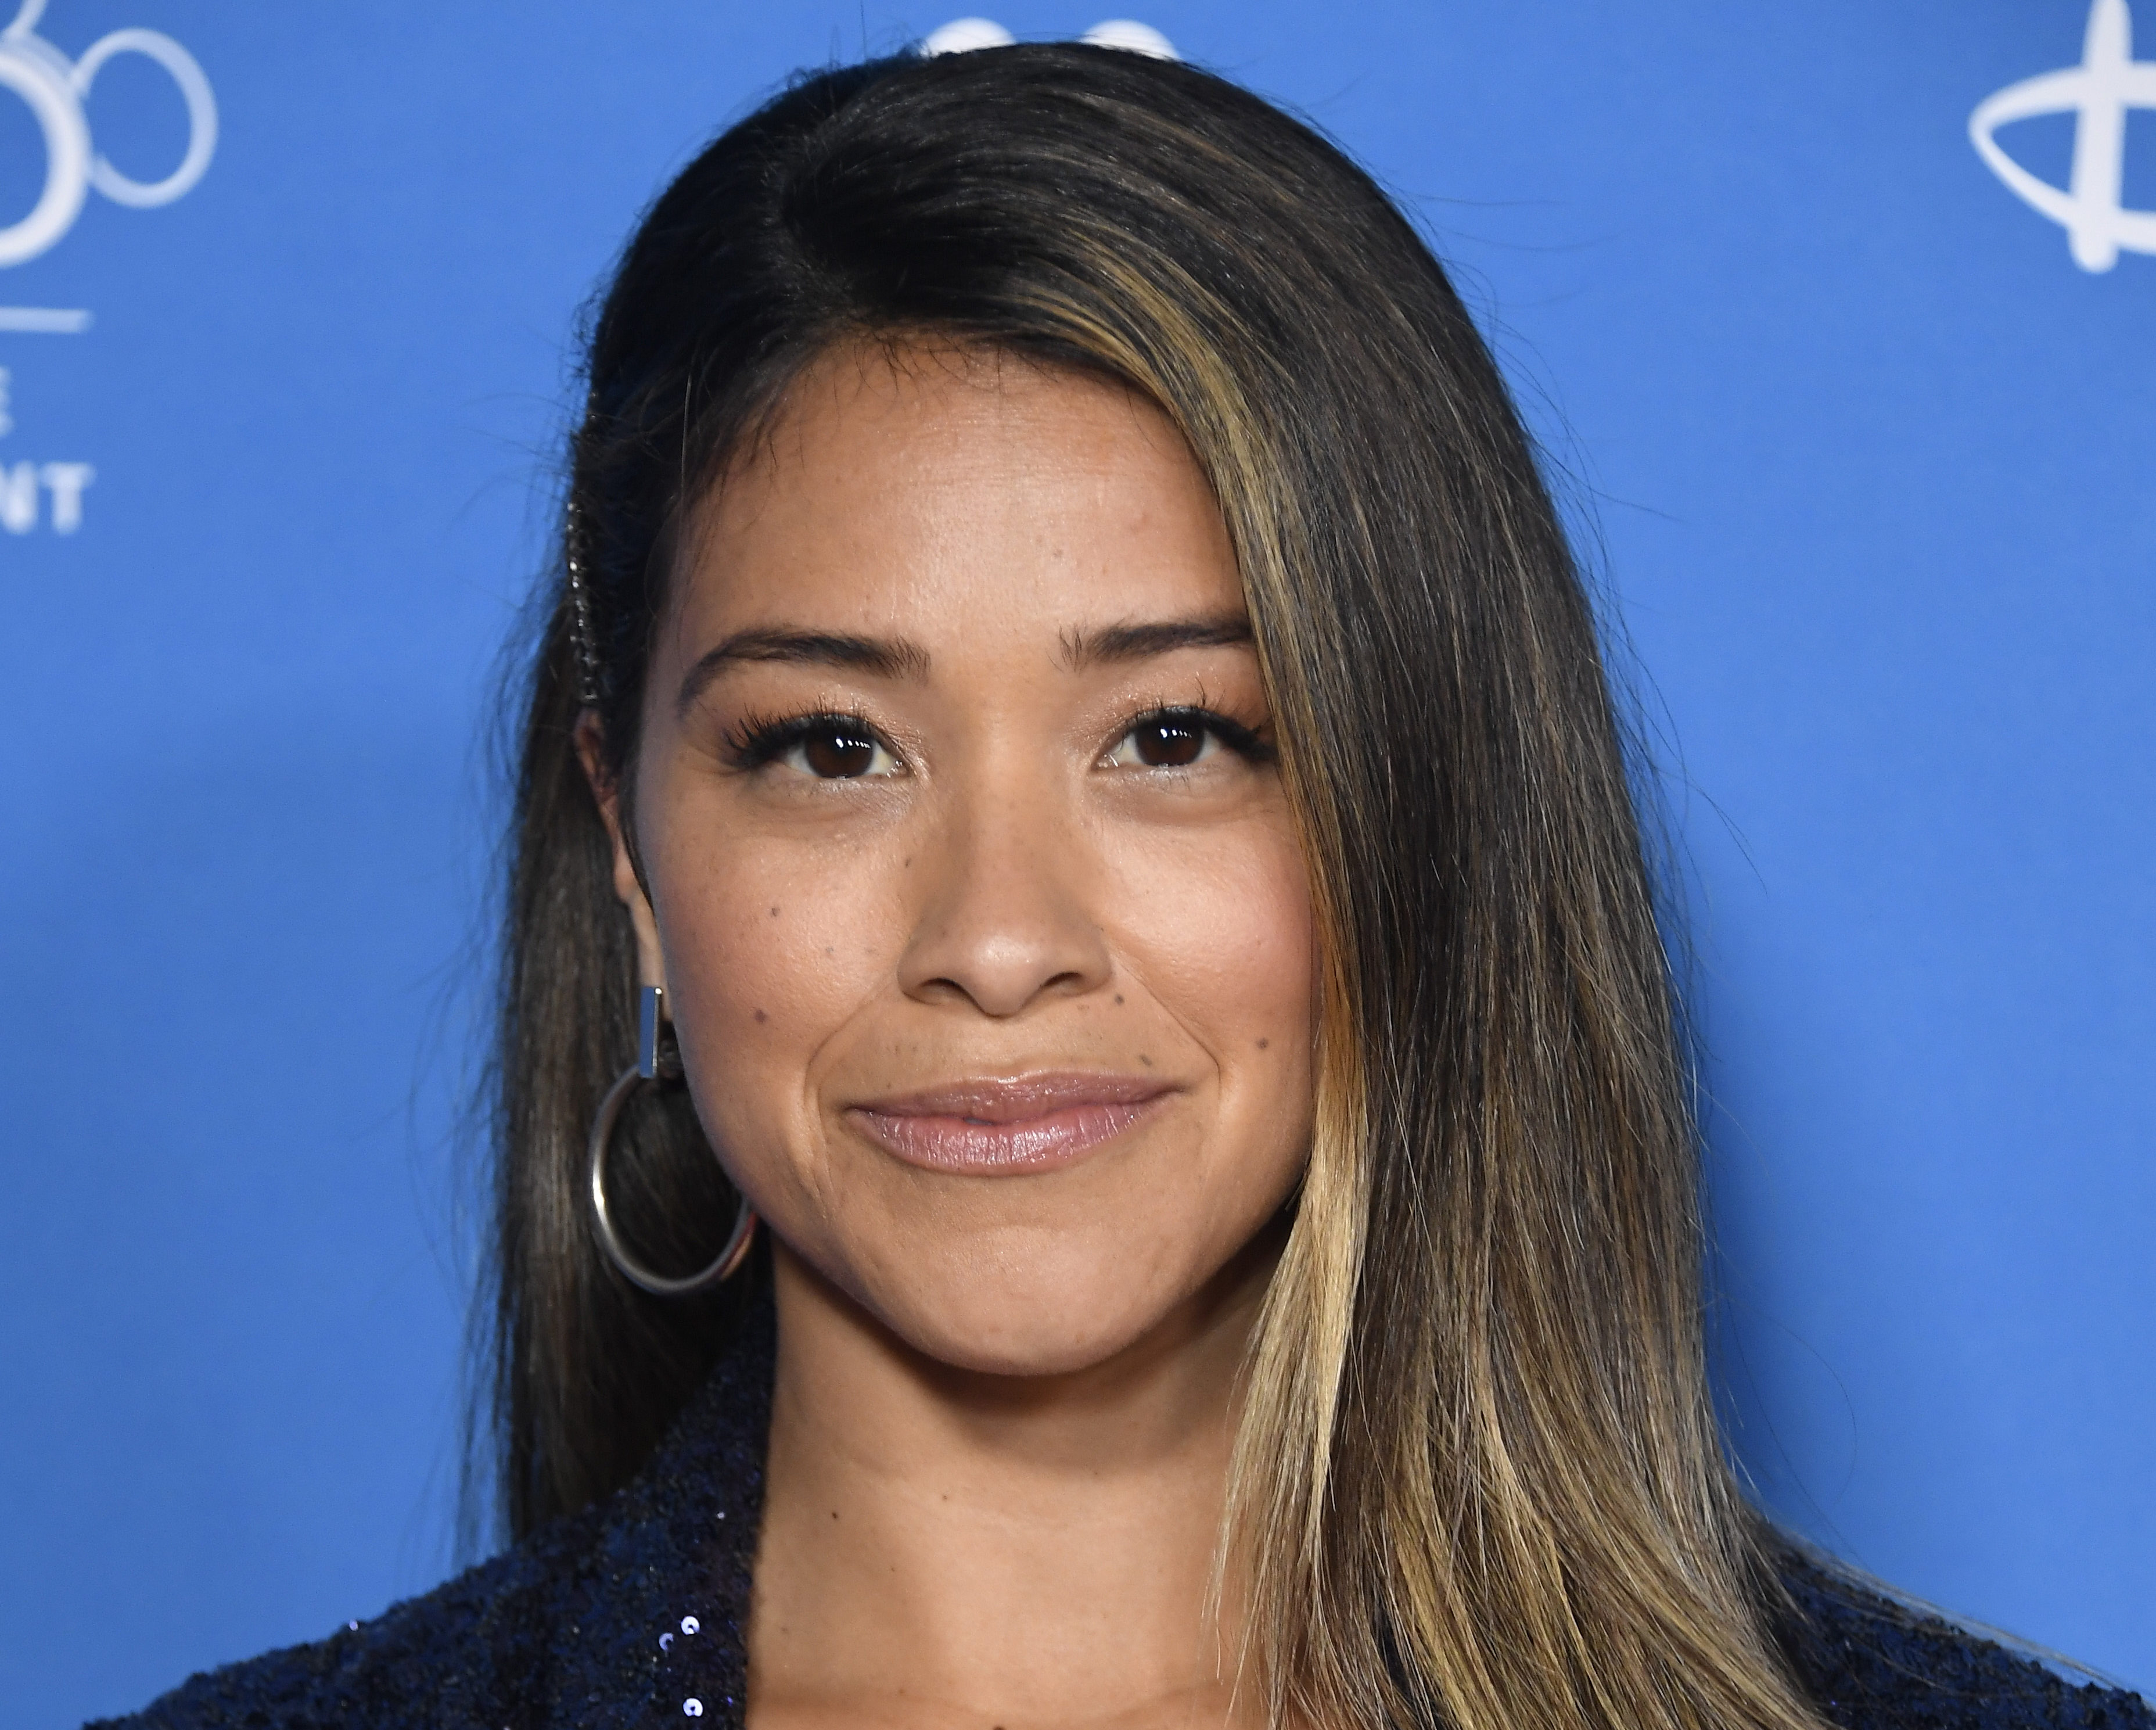 """Gina Rodriguez issues a public apology after fans called her out for singing the """"n-word"""" aloud in a video that was uploaded to her Instagram story."""